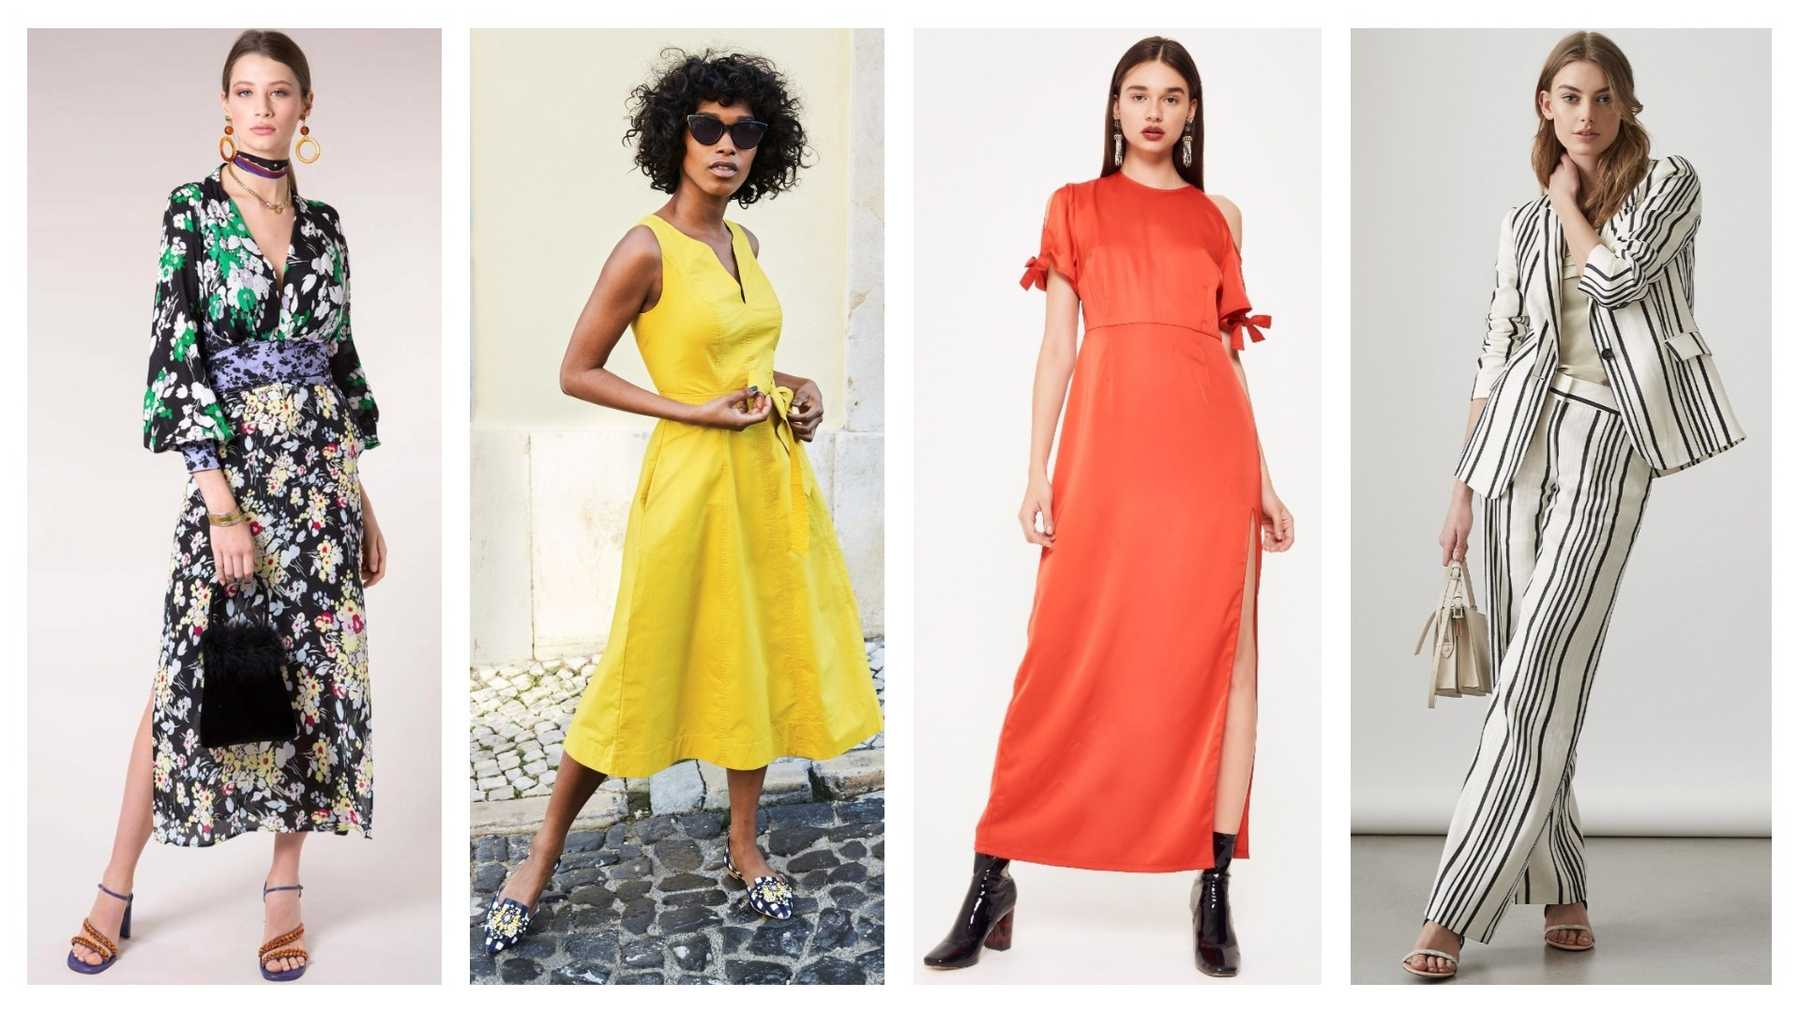 a7cacaf5ae34 Stylish Wedding Guest Dresses You ll Actually Want To Wear Again ...